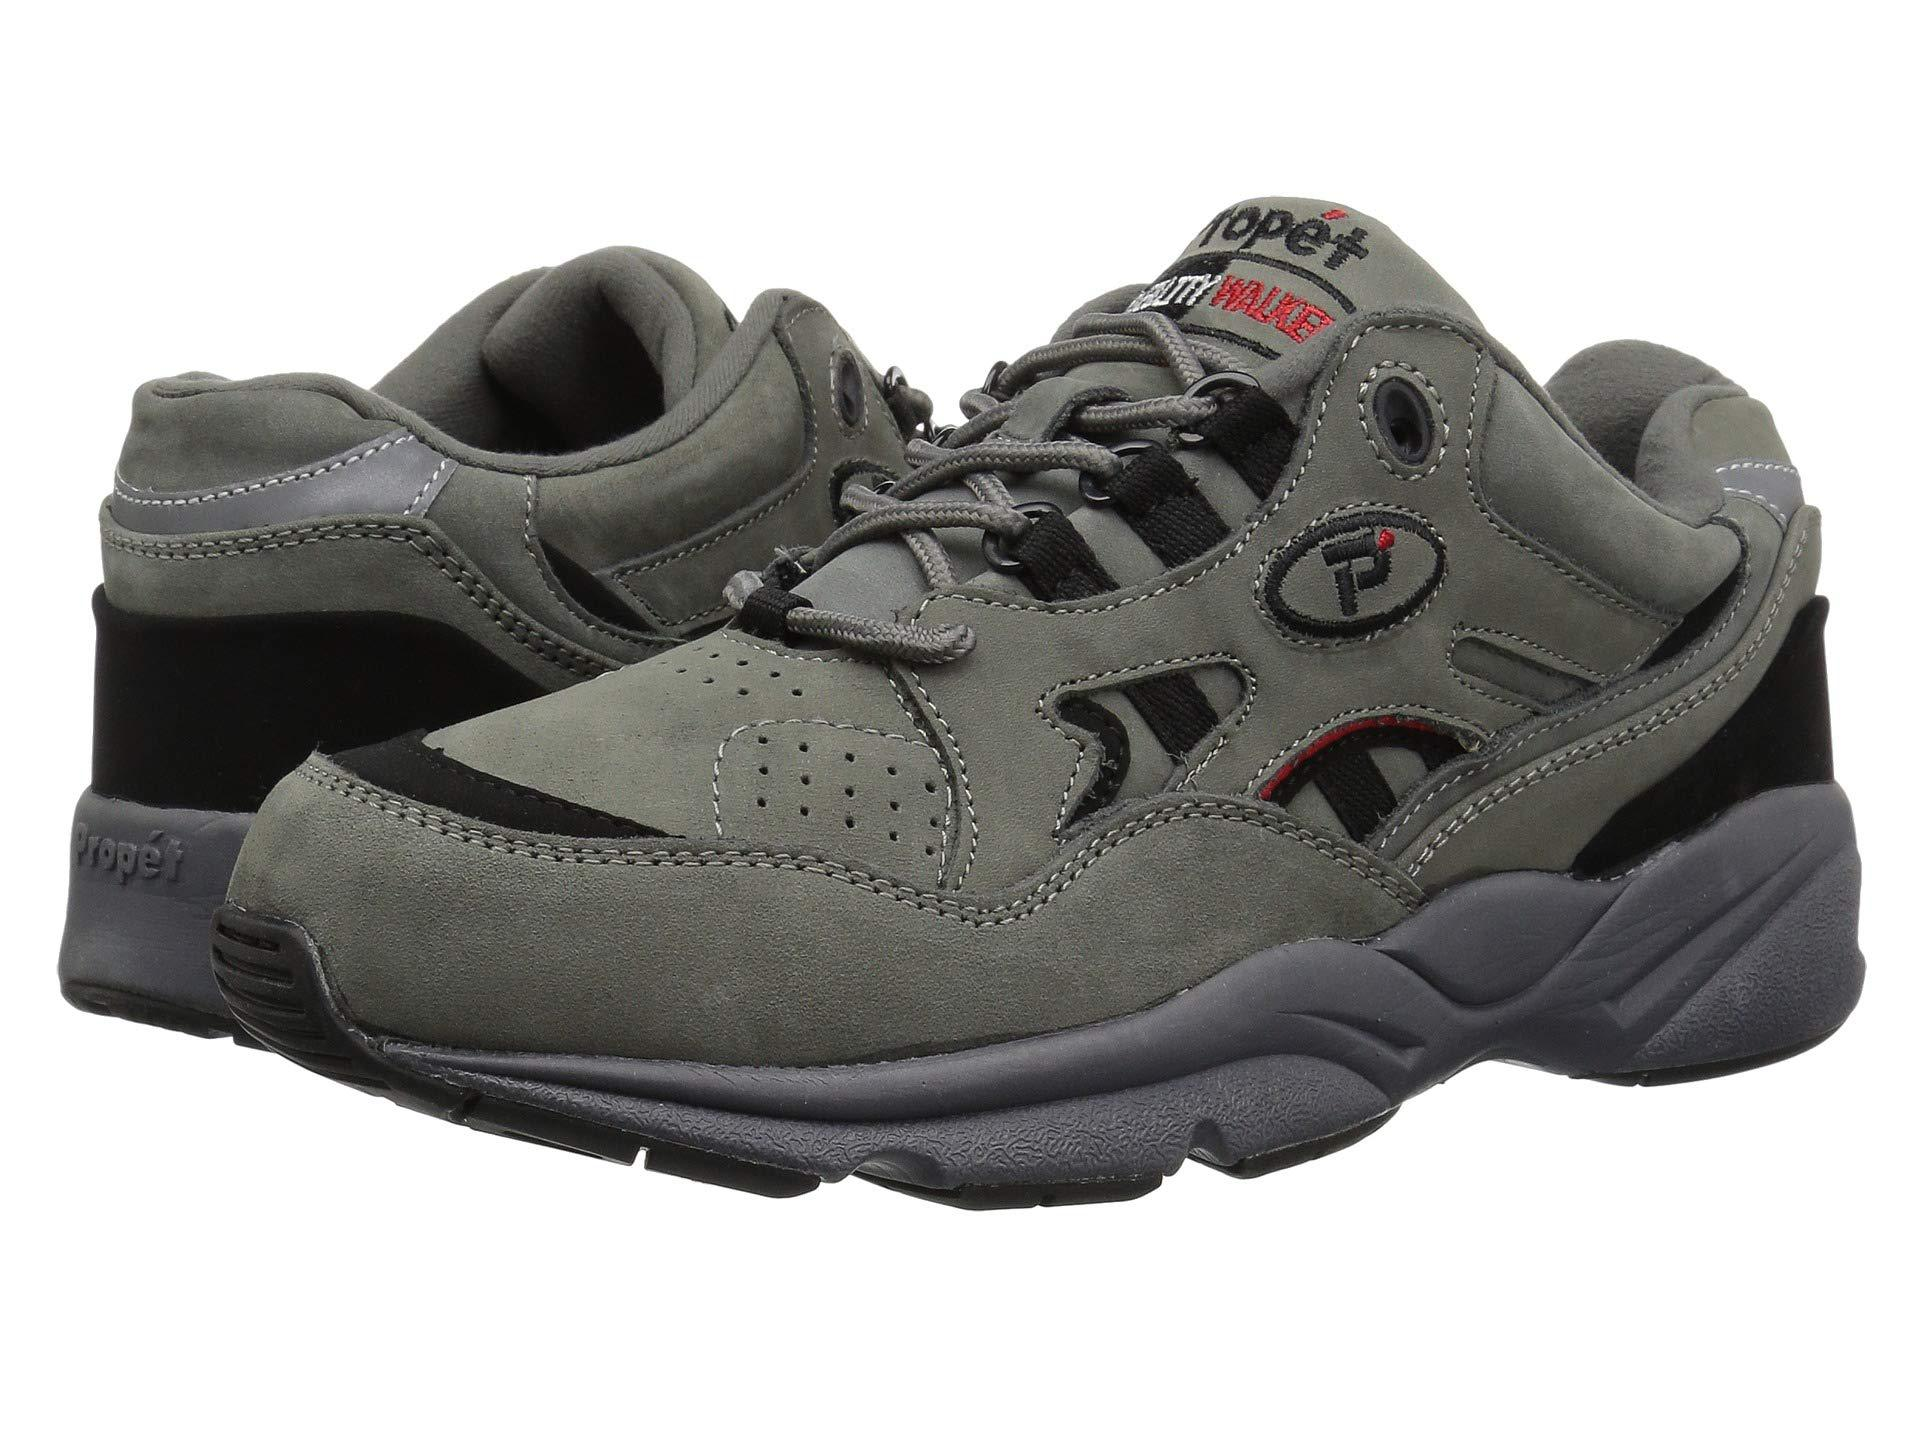 7263512eec2a0 Propet. Gray Stability Walker Medicare hcpcs Code   A5500 Diabetic Shoe  (white Leather) Men s Walking Shoes